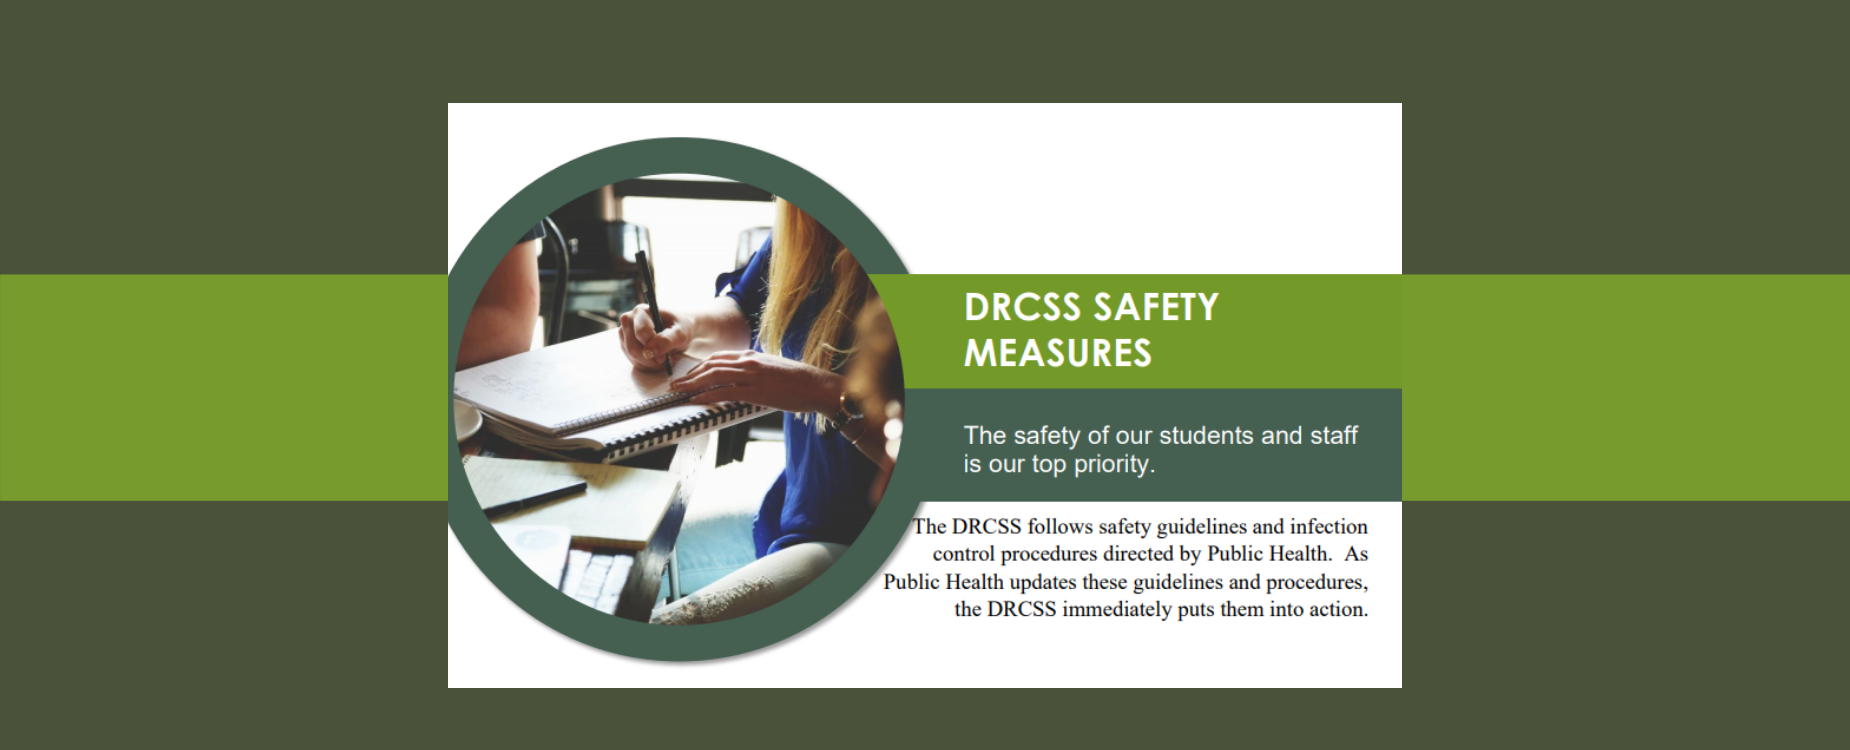 DRCSS Safety Measures